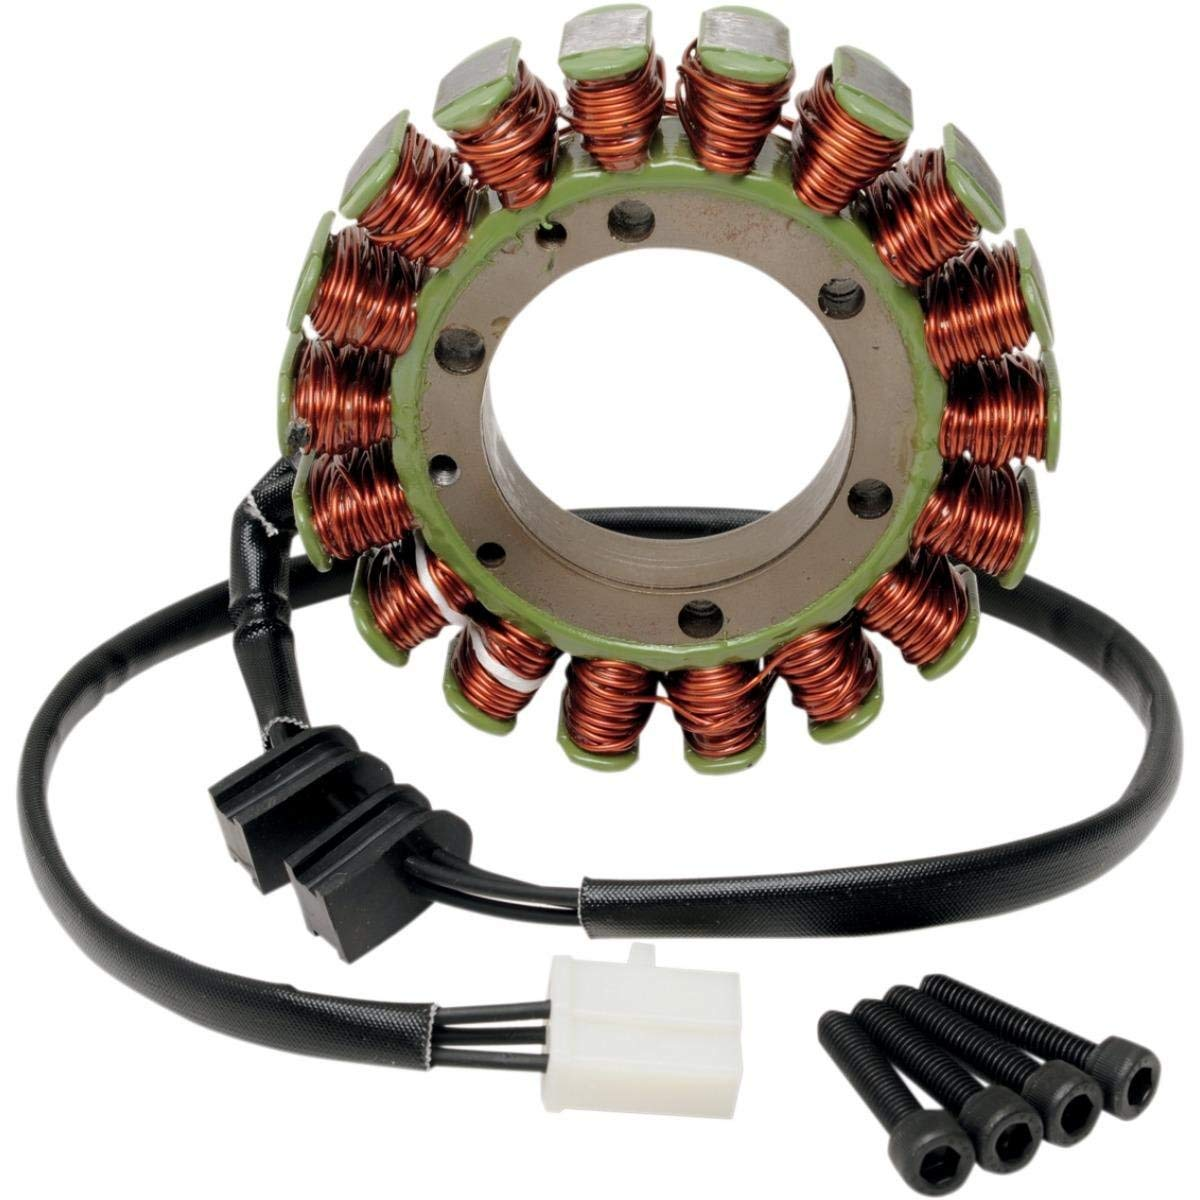 Orange Cycle Parts Electric Stator for Kawasaki 2003 - 2004 ZX-6RR Ninja Models